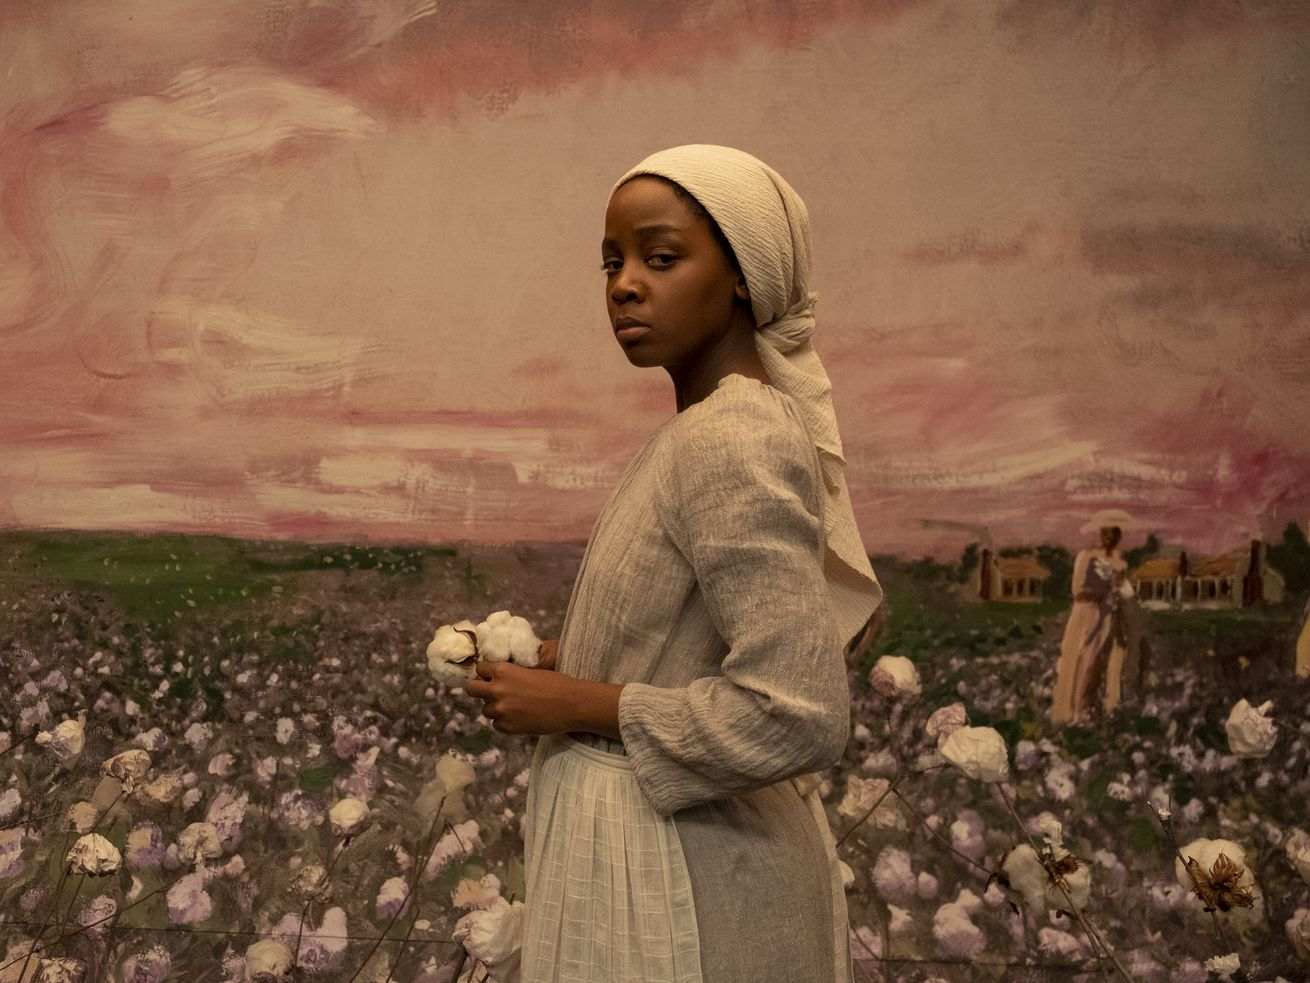 Cora, played by Thuso Mbedu, looks directly at the viewer in front of a mural of a cotton field.